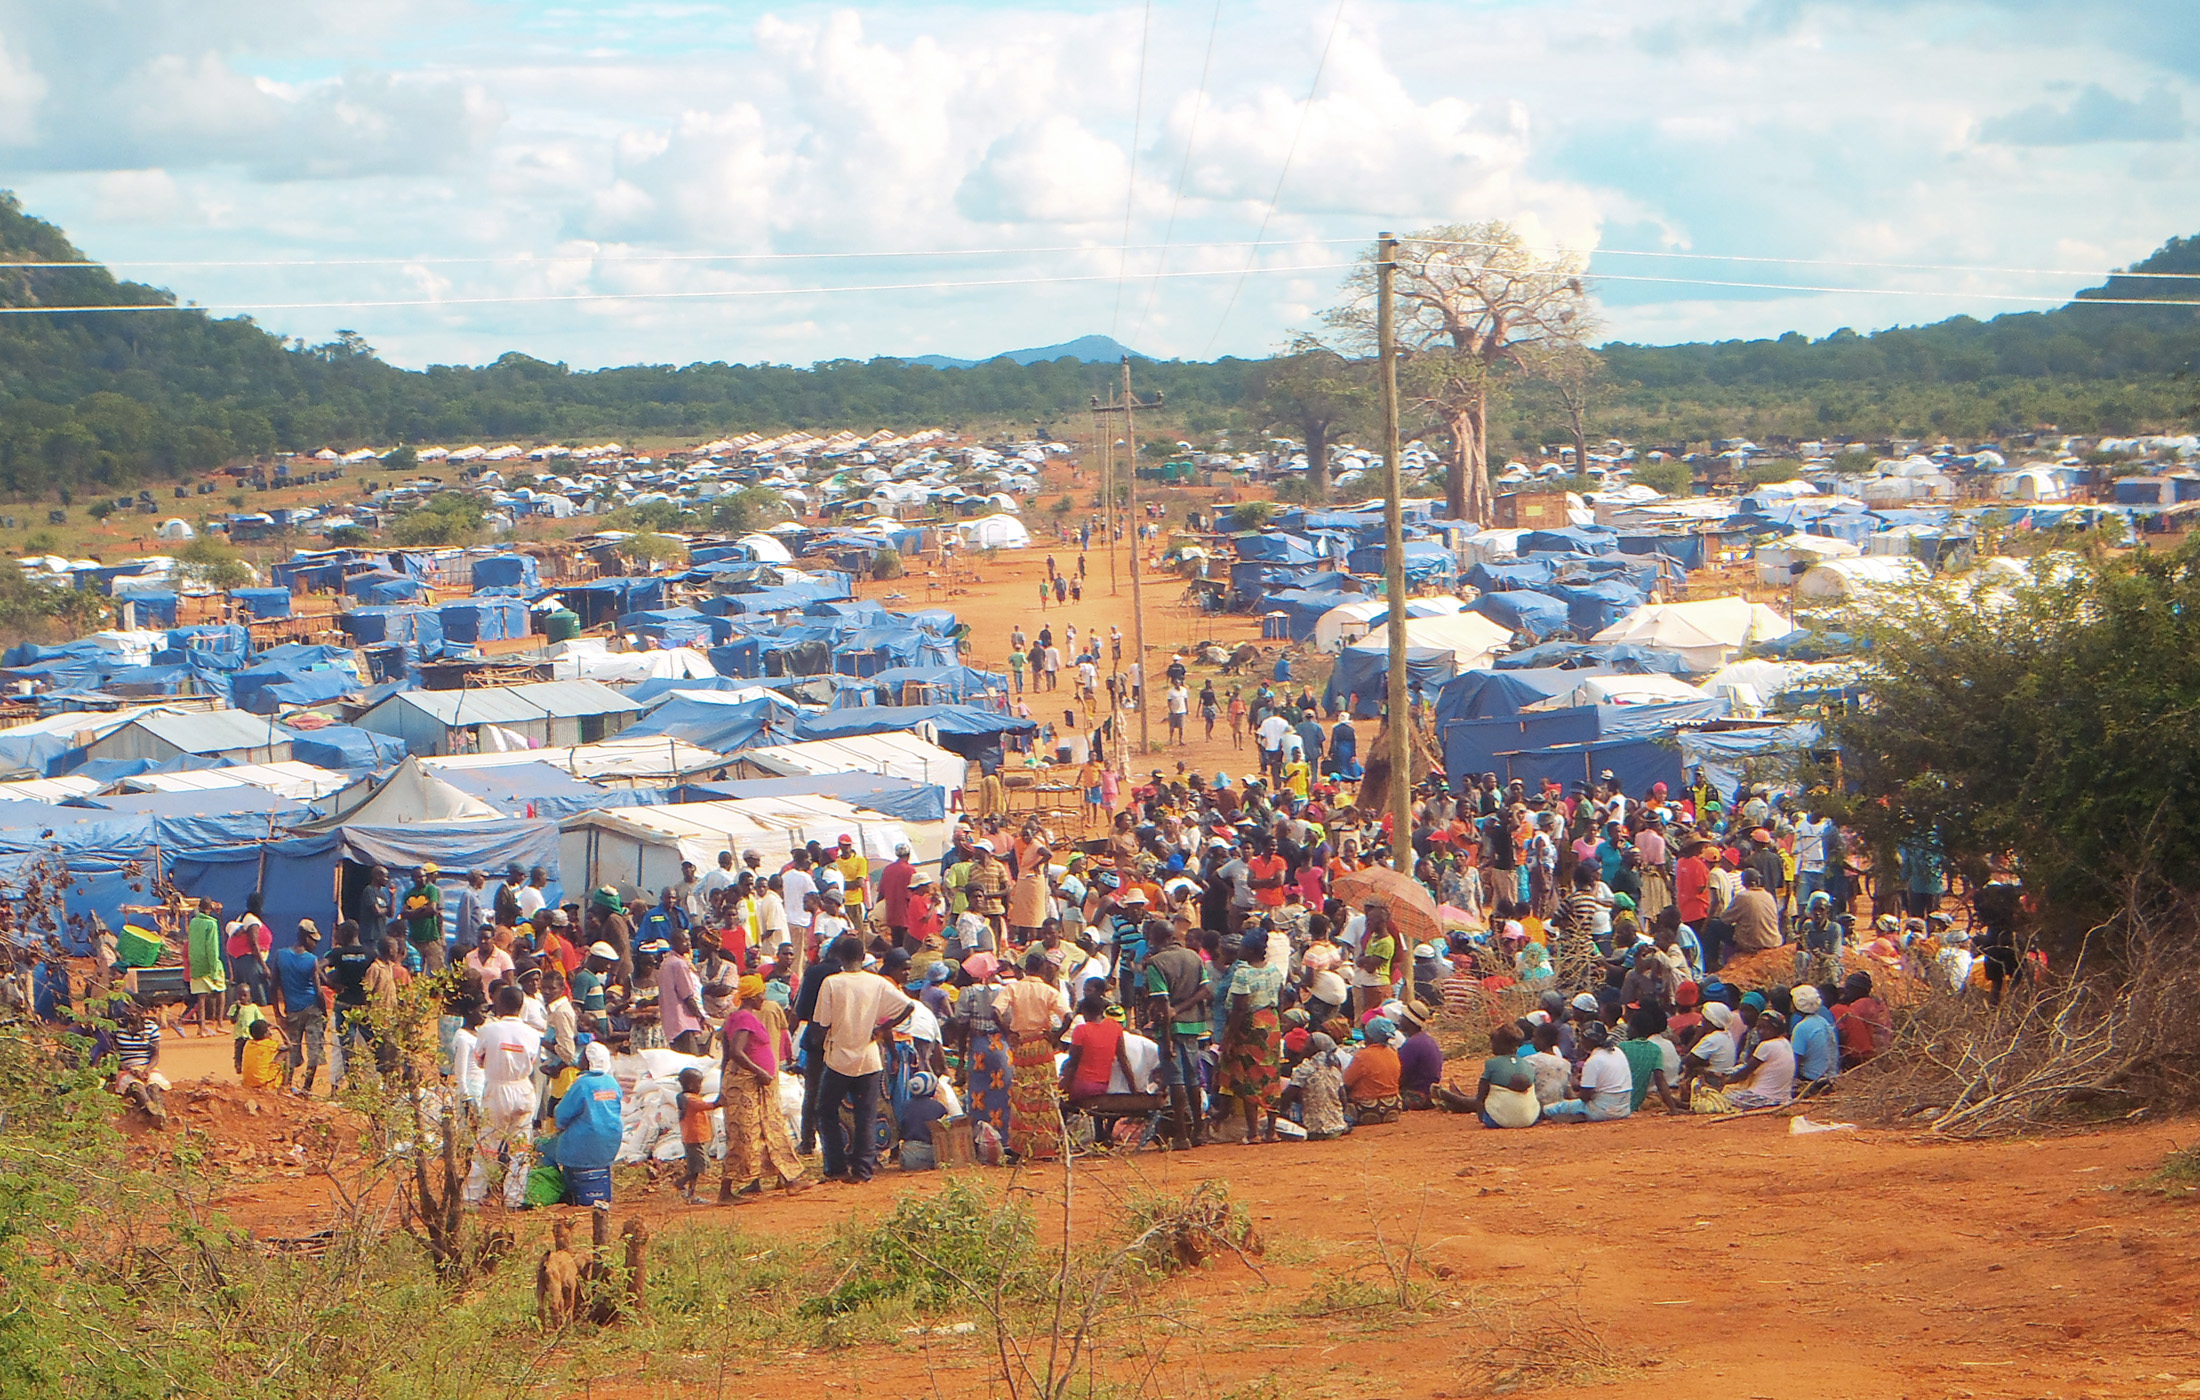 Over 3,000 families have been staying at Chingwizi transit camp since being displaced by flooding in Tokwe-Mukosi dam basin in Zimbabwe's southeastern Masvingo Province in early February 2014